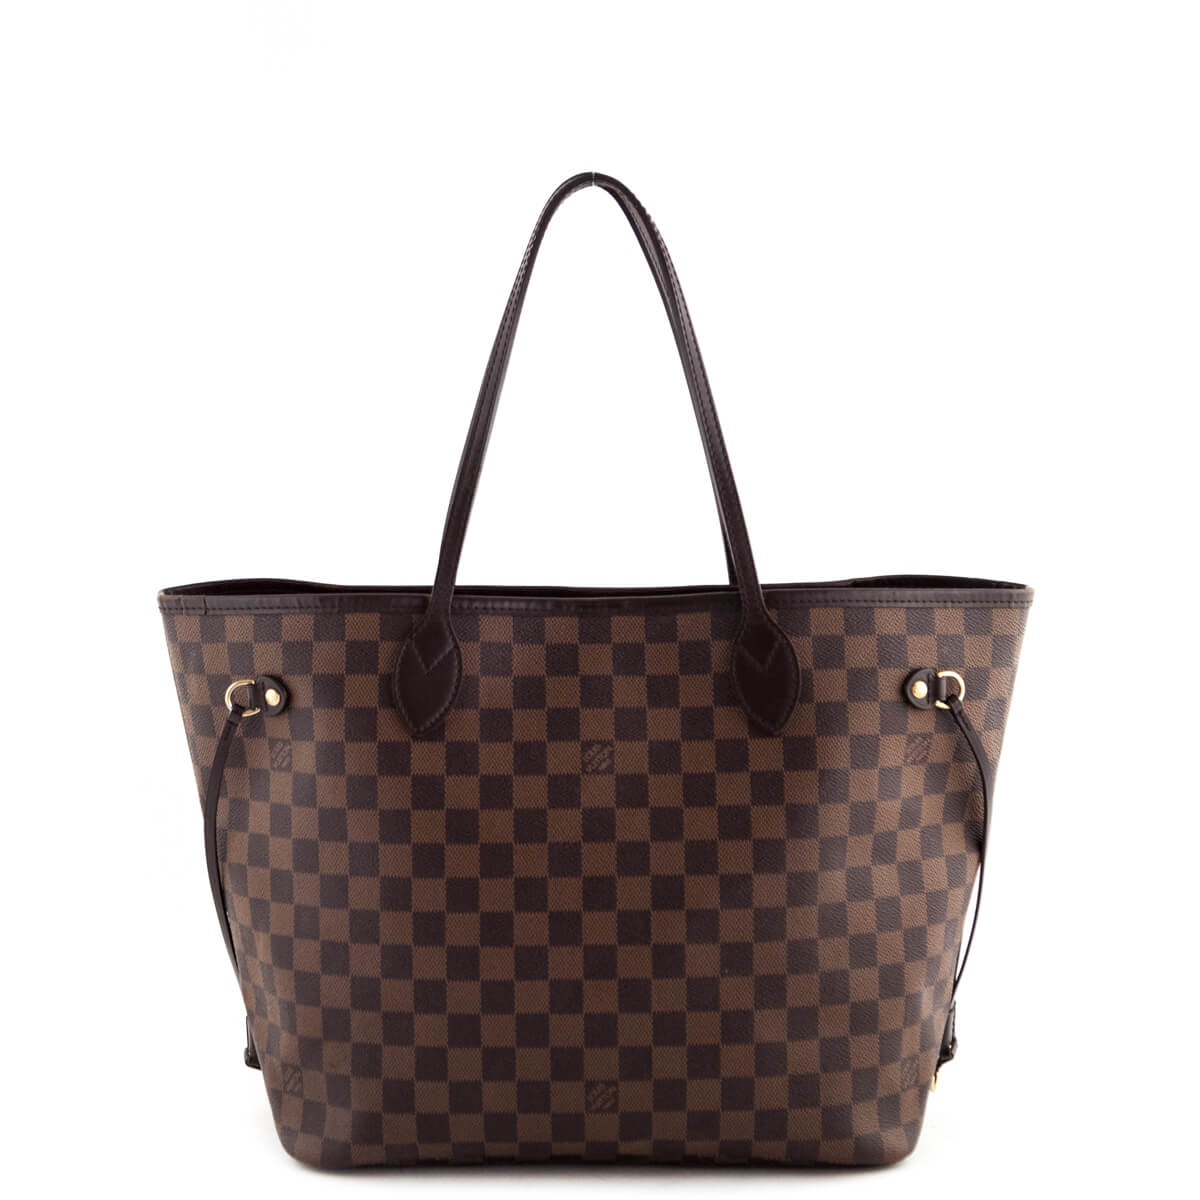 Louis Vuitton Damier Ebene Neverfull MM - LOVE that BAG - Preowned  Authentic Designer Handbags ... 1cff4aece8fea